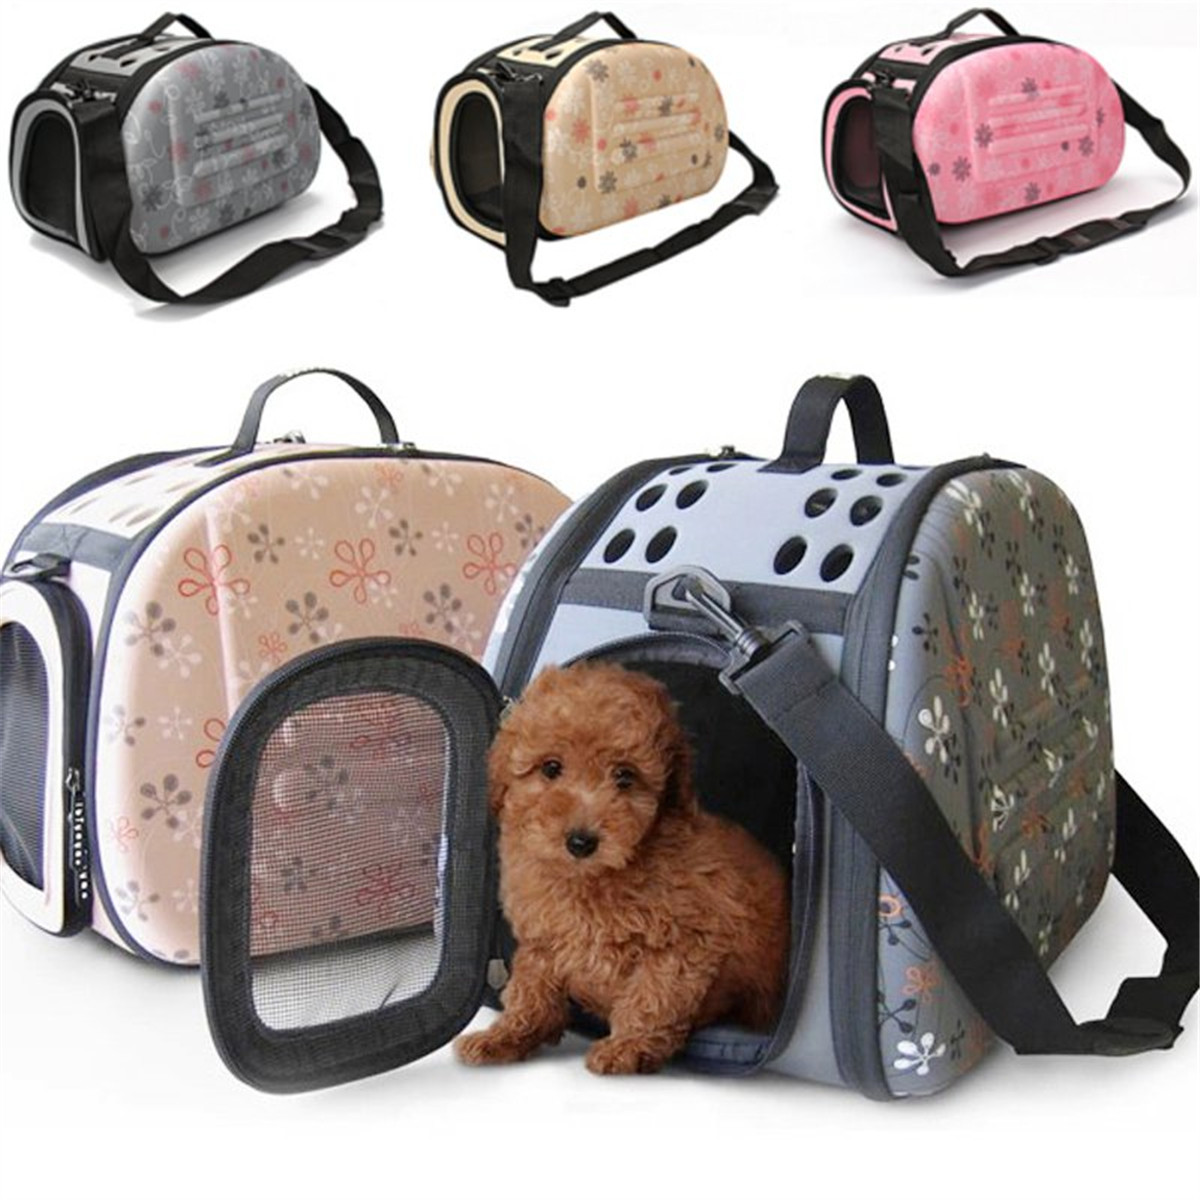 Portable Pet Small Dog Cat Sided Carrier Travel Tote Shoulder Bag Cage Kennel Perfect for Cats and Small Dogs